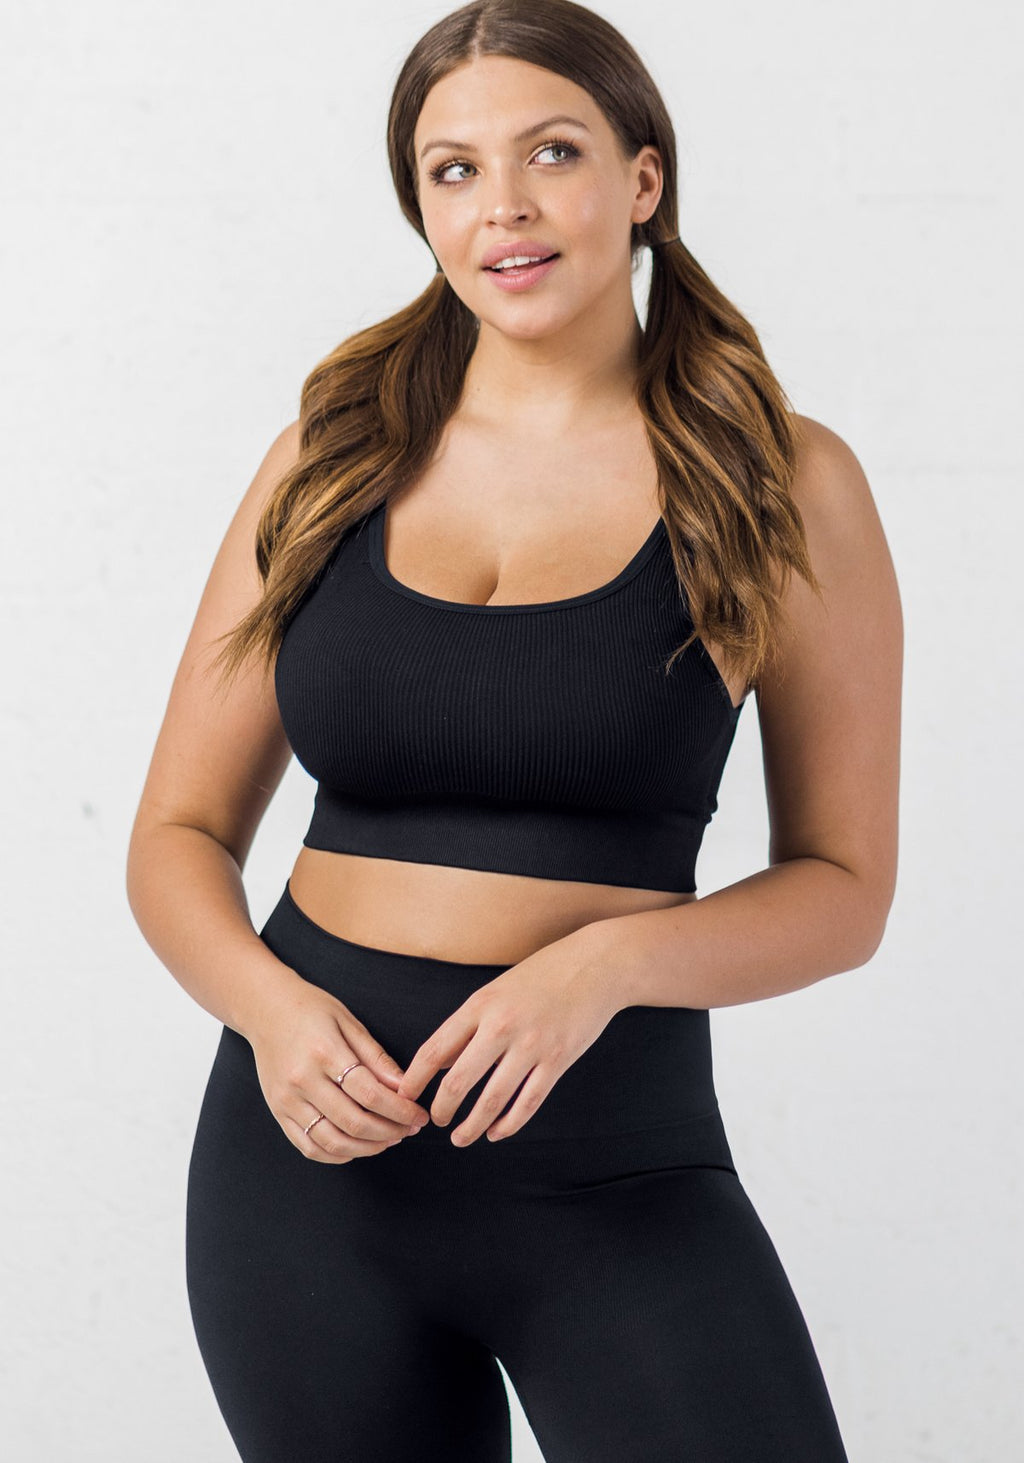 BLANQI® EVERYDAY™ Ribbed Seamless Bralette - Black